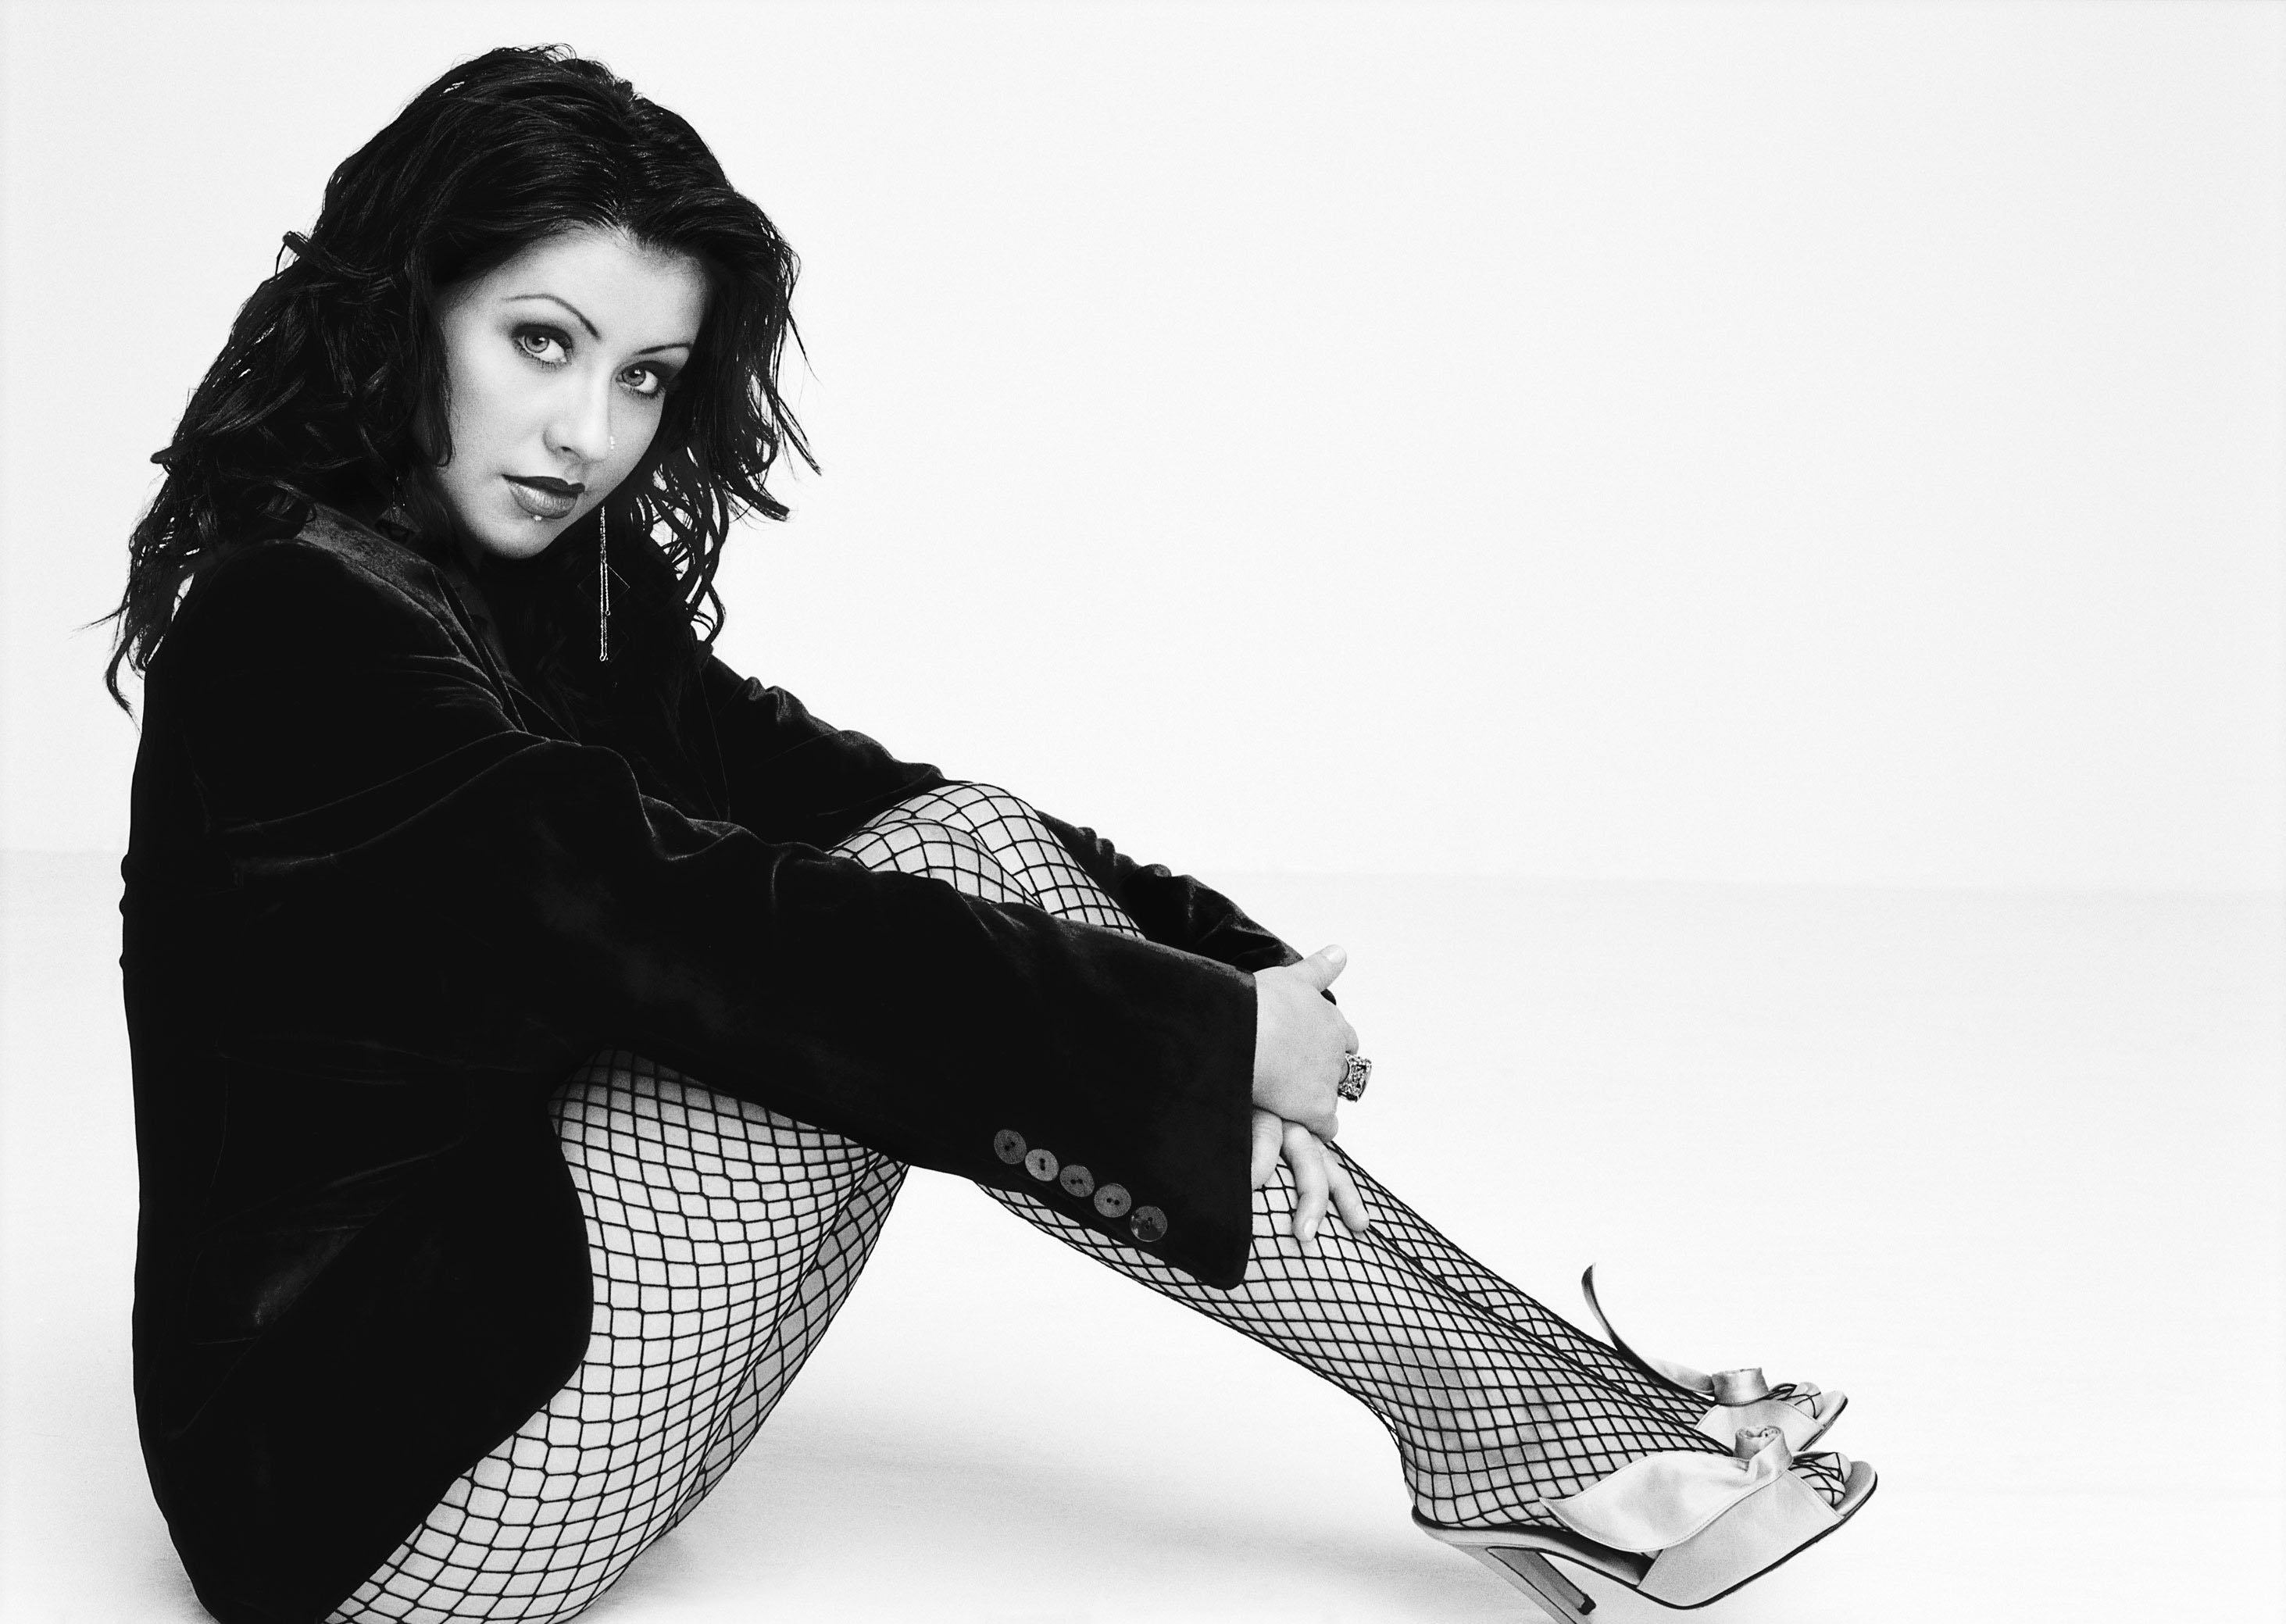 79639_XTina_for_Esquire_3_122_442lo.jpg